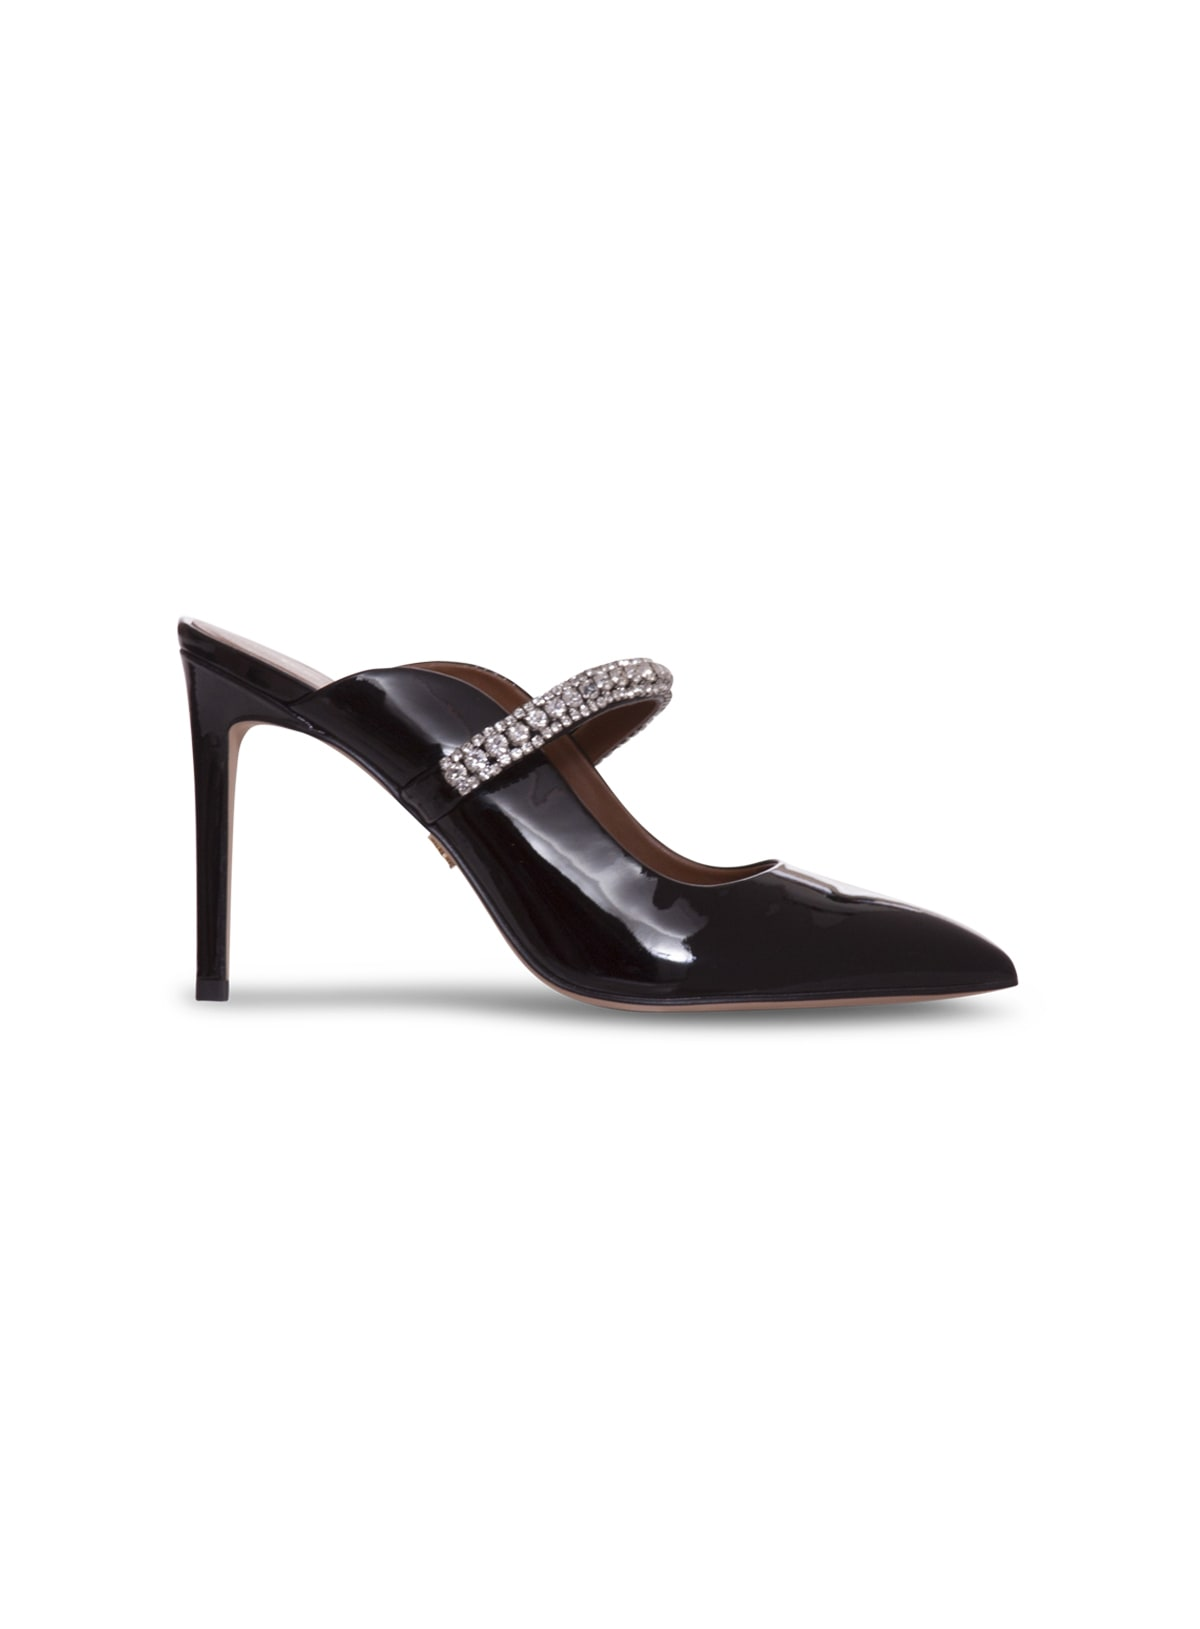 Kurt Geiger DUKE STILETTO MULES